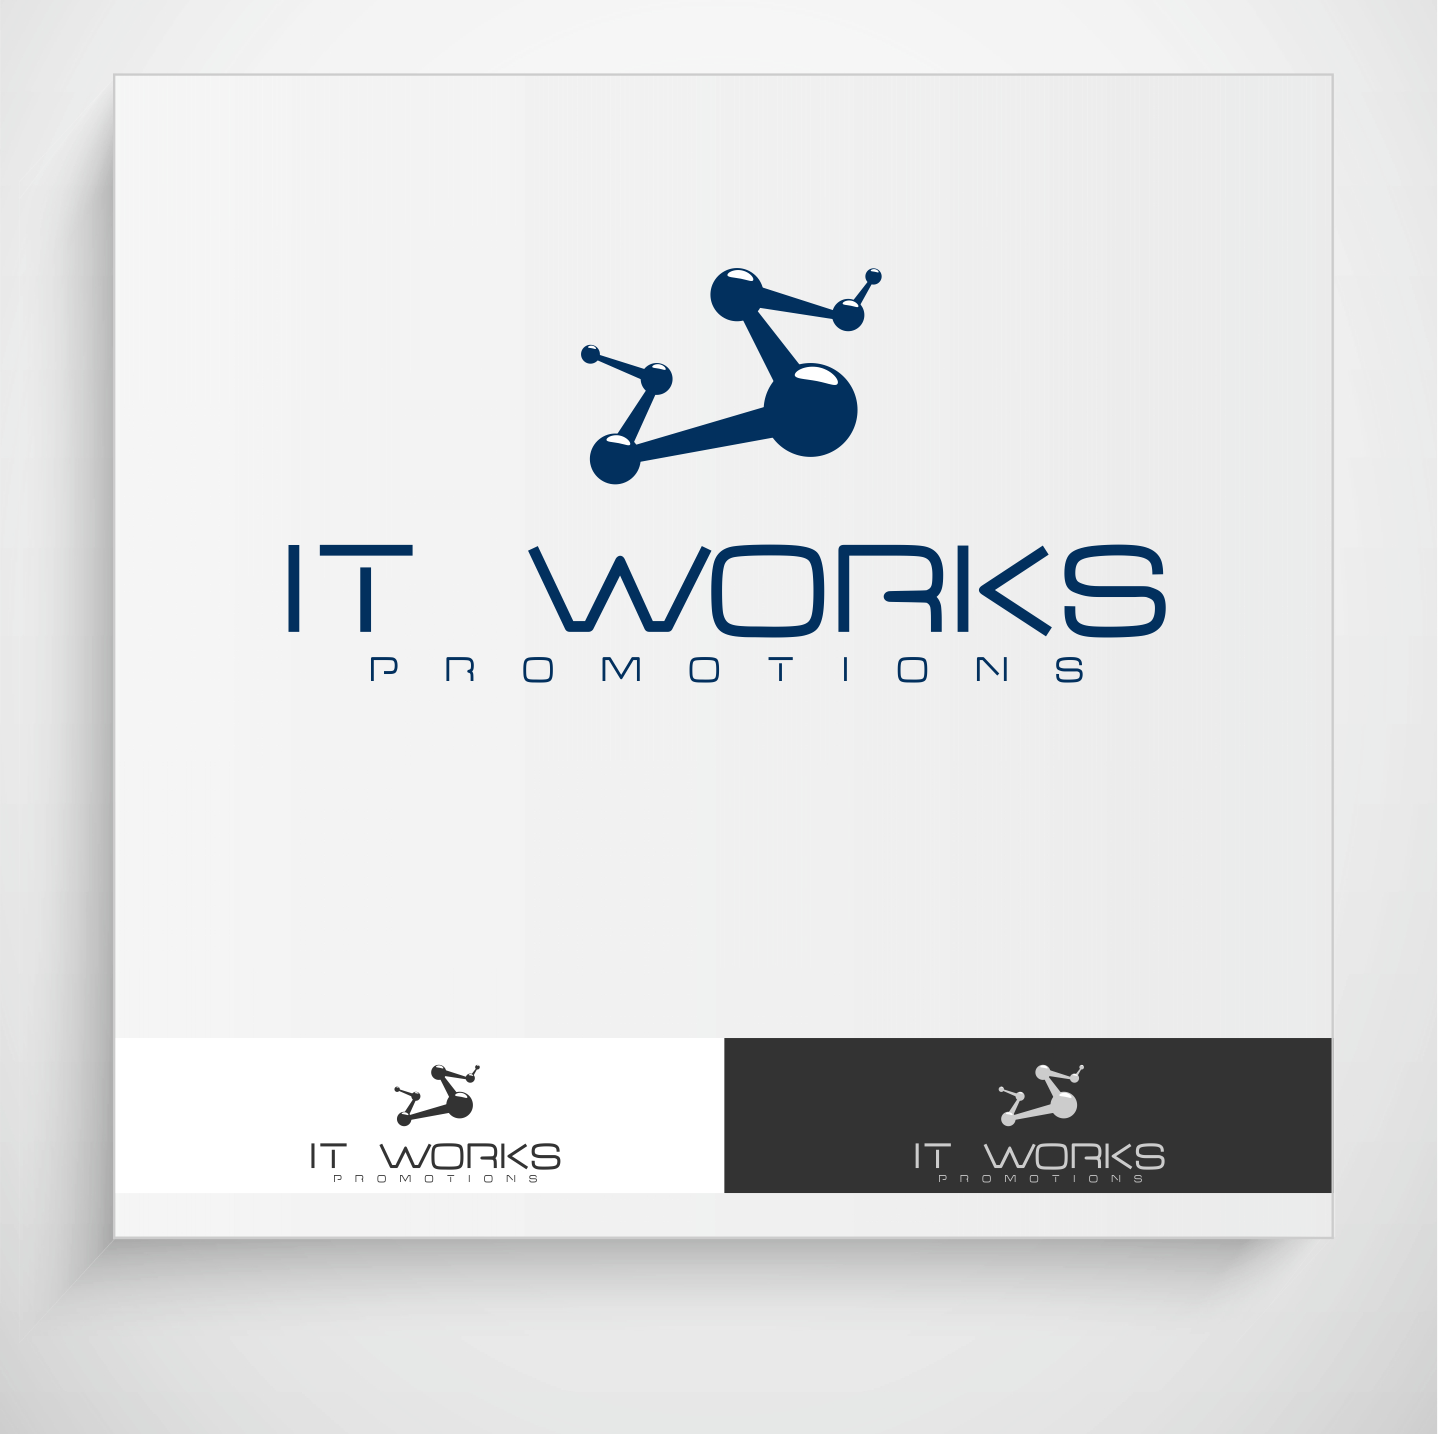 Logo Design by Krzysztof Mokanek - Entry No. 230 in the Logo Design Contest Creative Logo Design for It Works Promotions.